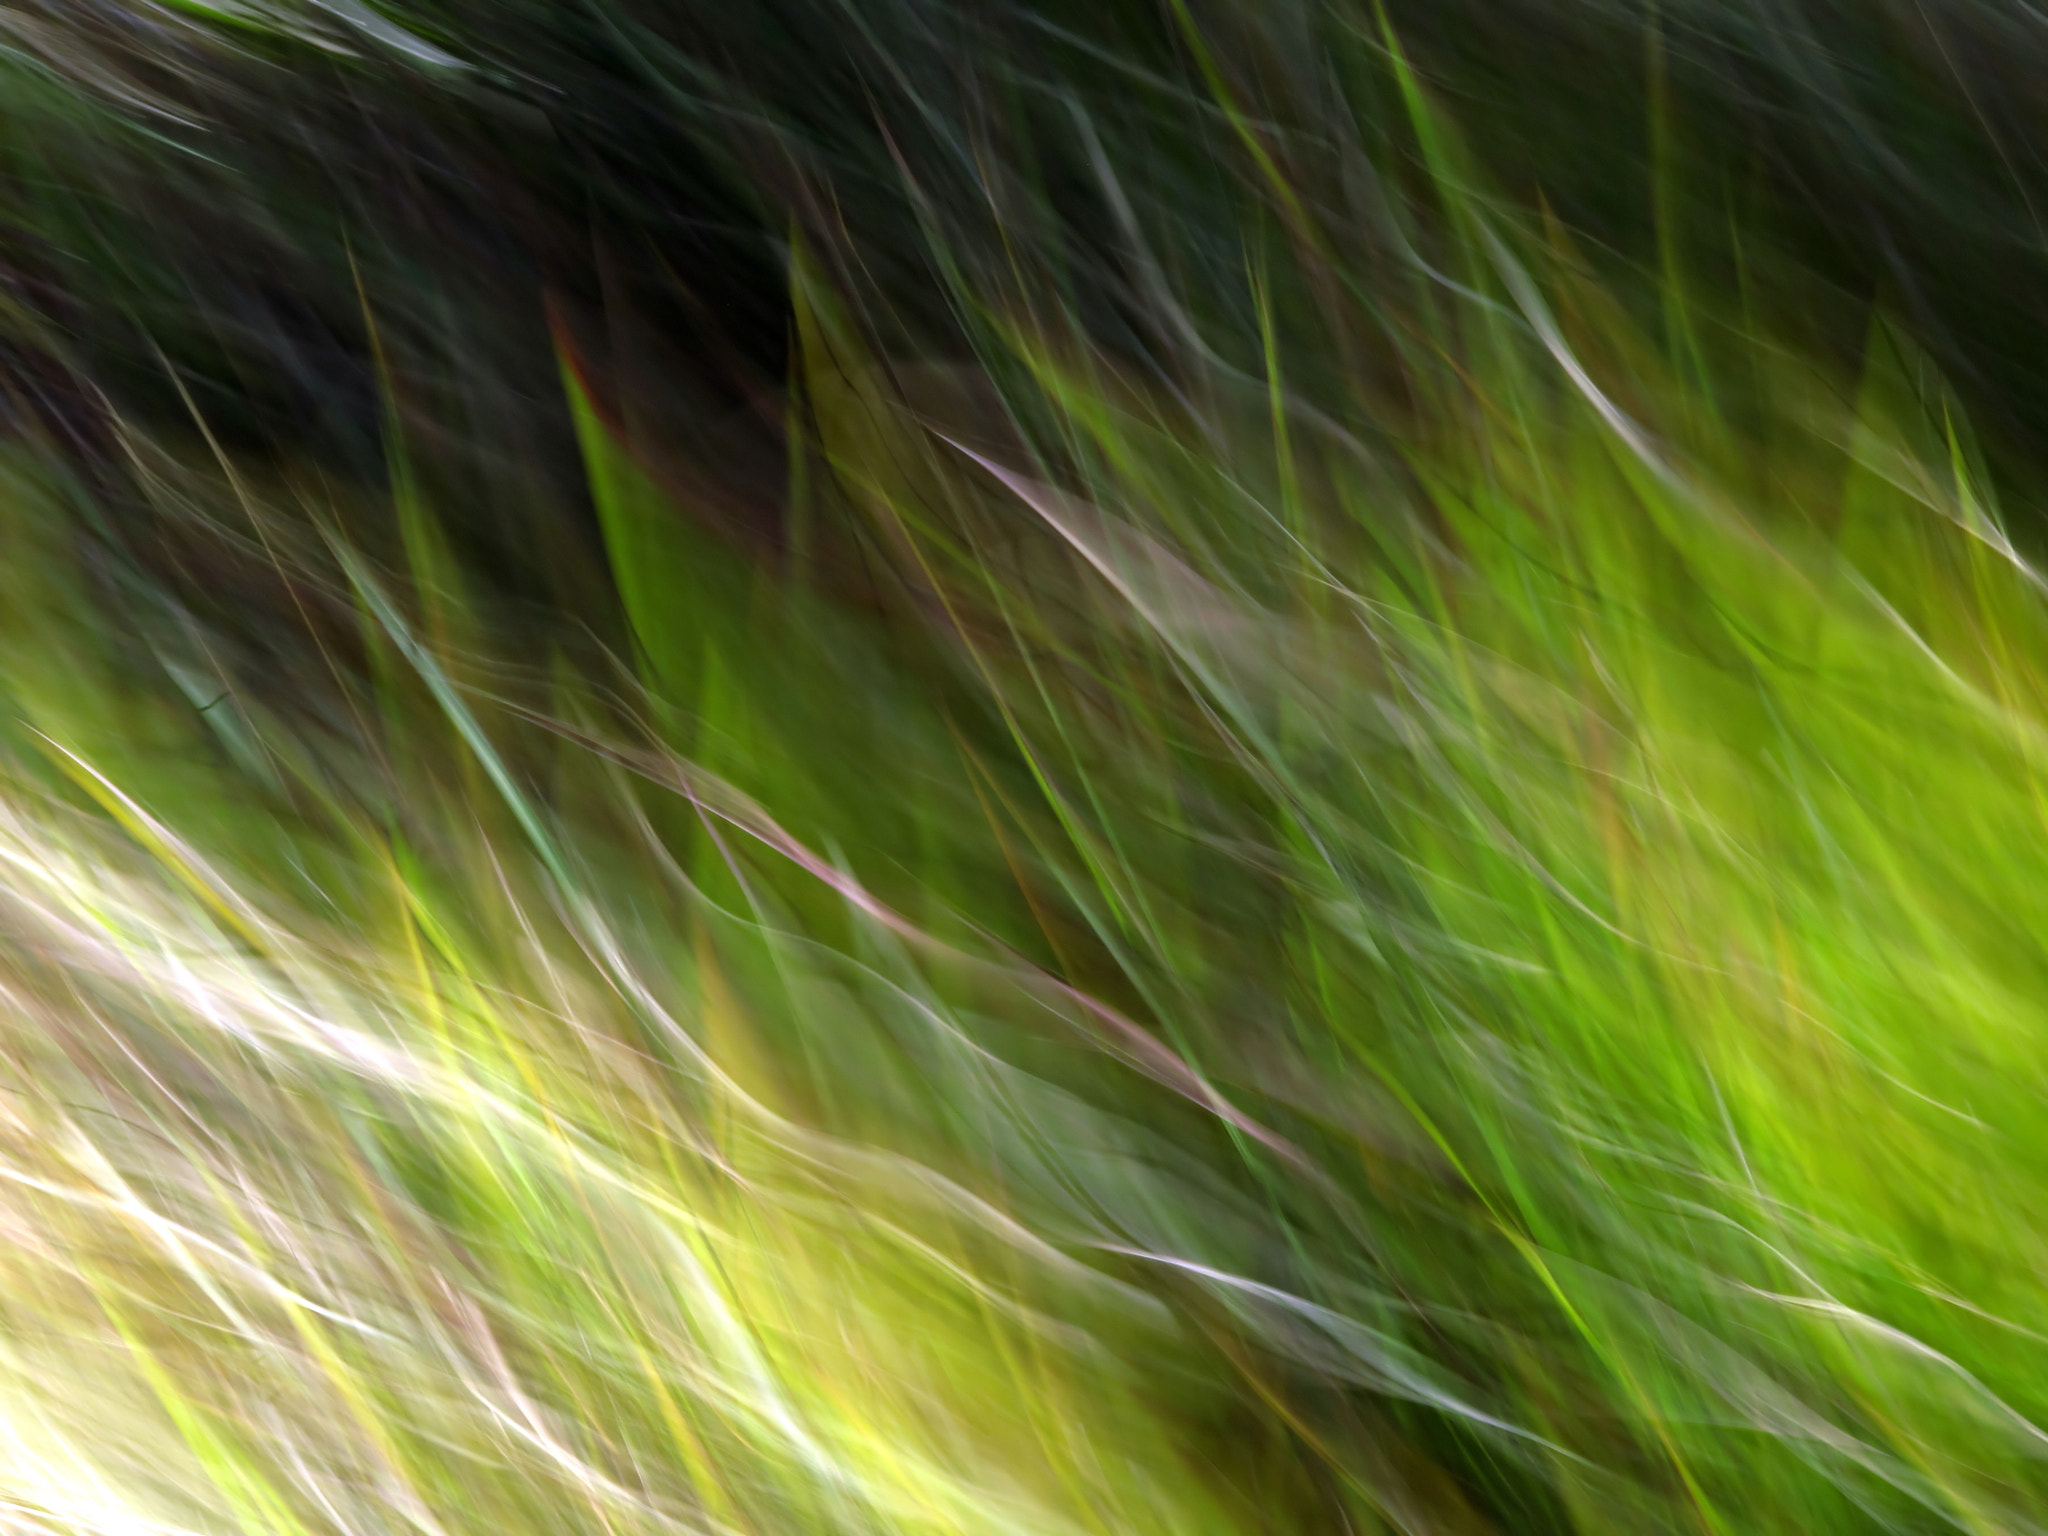 Photograph Watching the Wind Blow #2 by Kitsmumma Fine Art on 500px